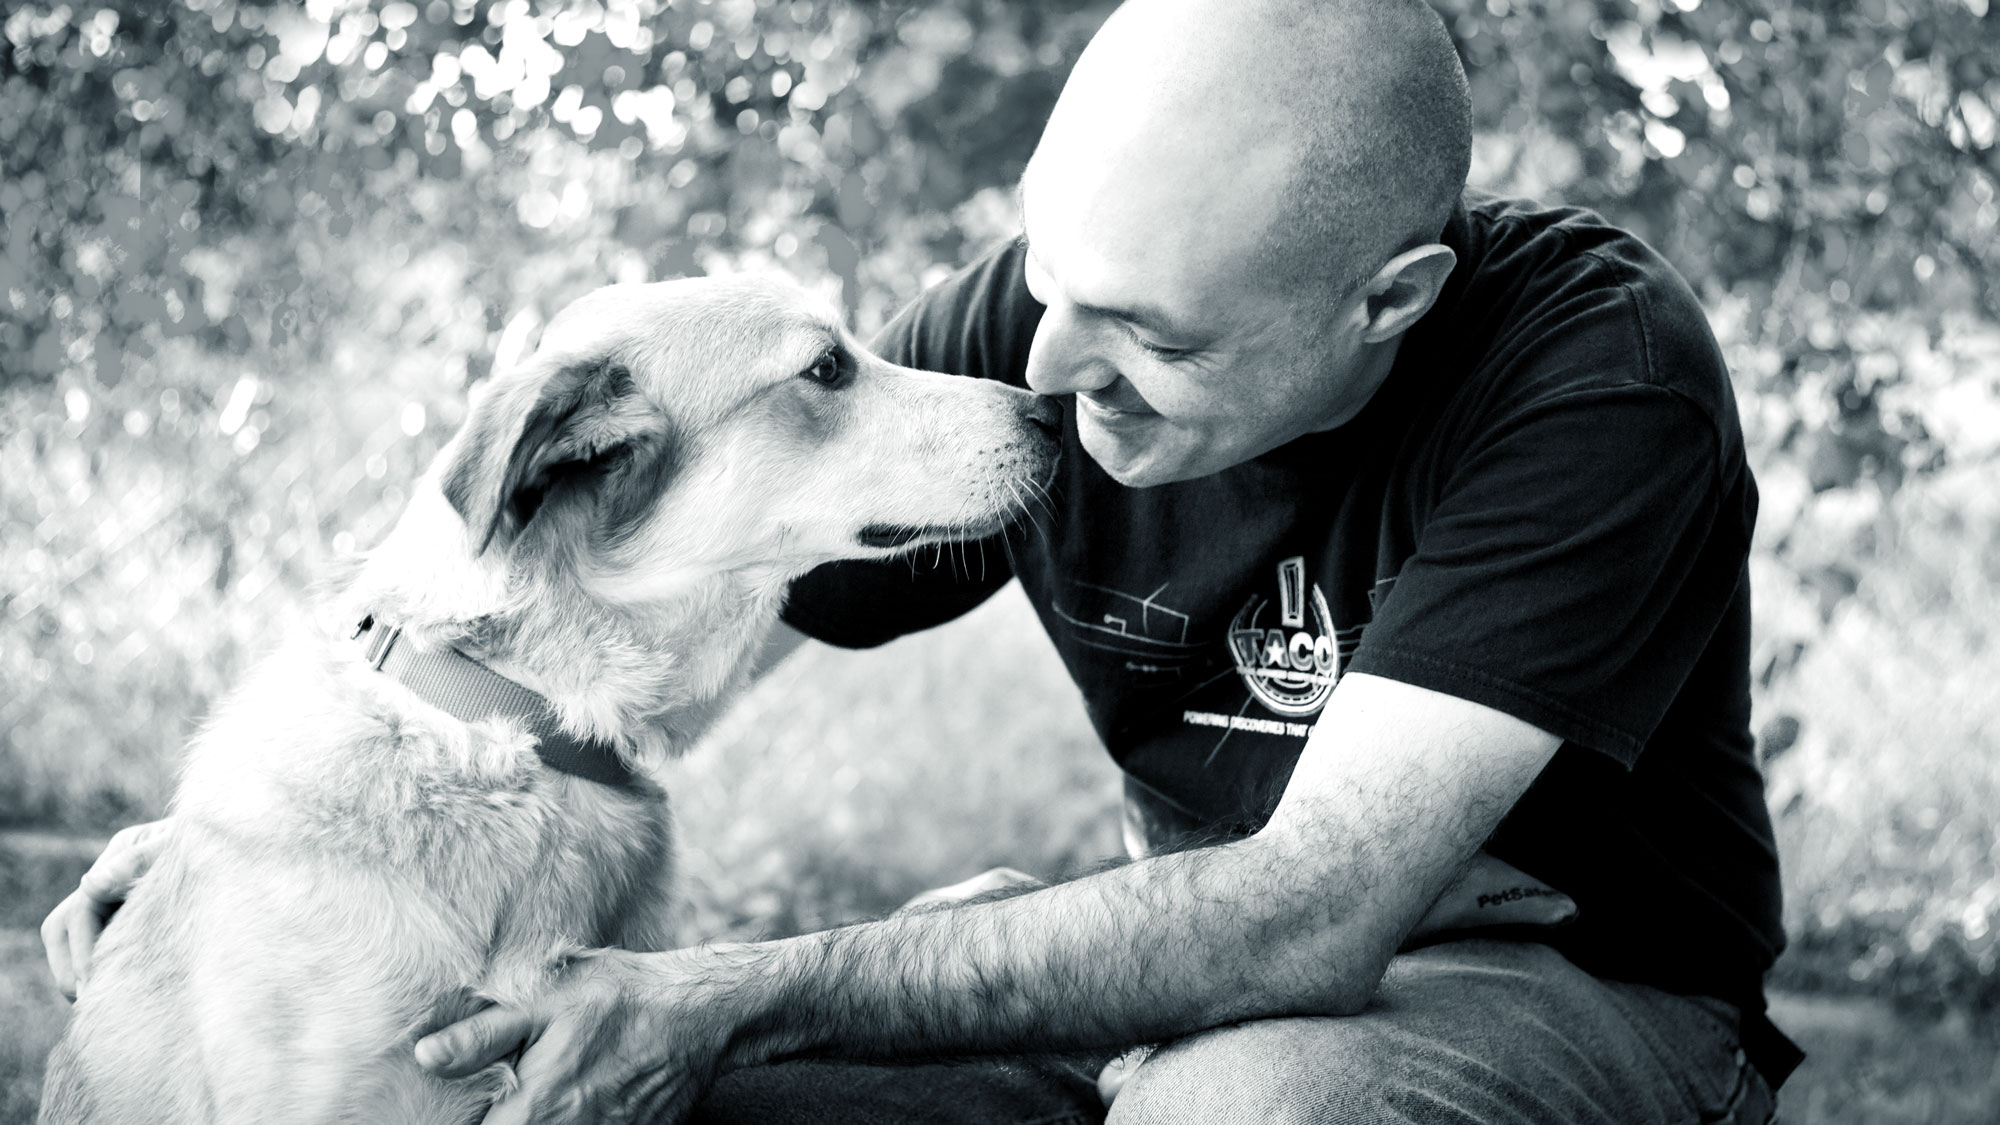 - TPA ALLOWS RESCUE GROUPS TO FOCUS ON ANIMAL LIVES NOT LEGISLATION